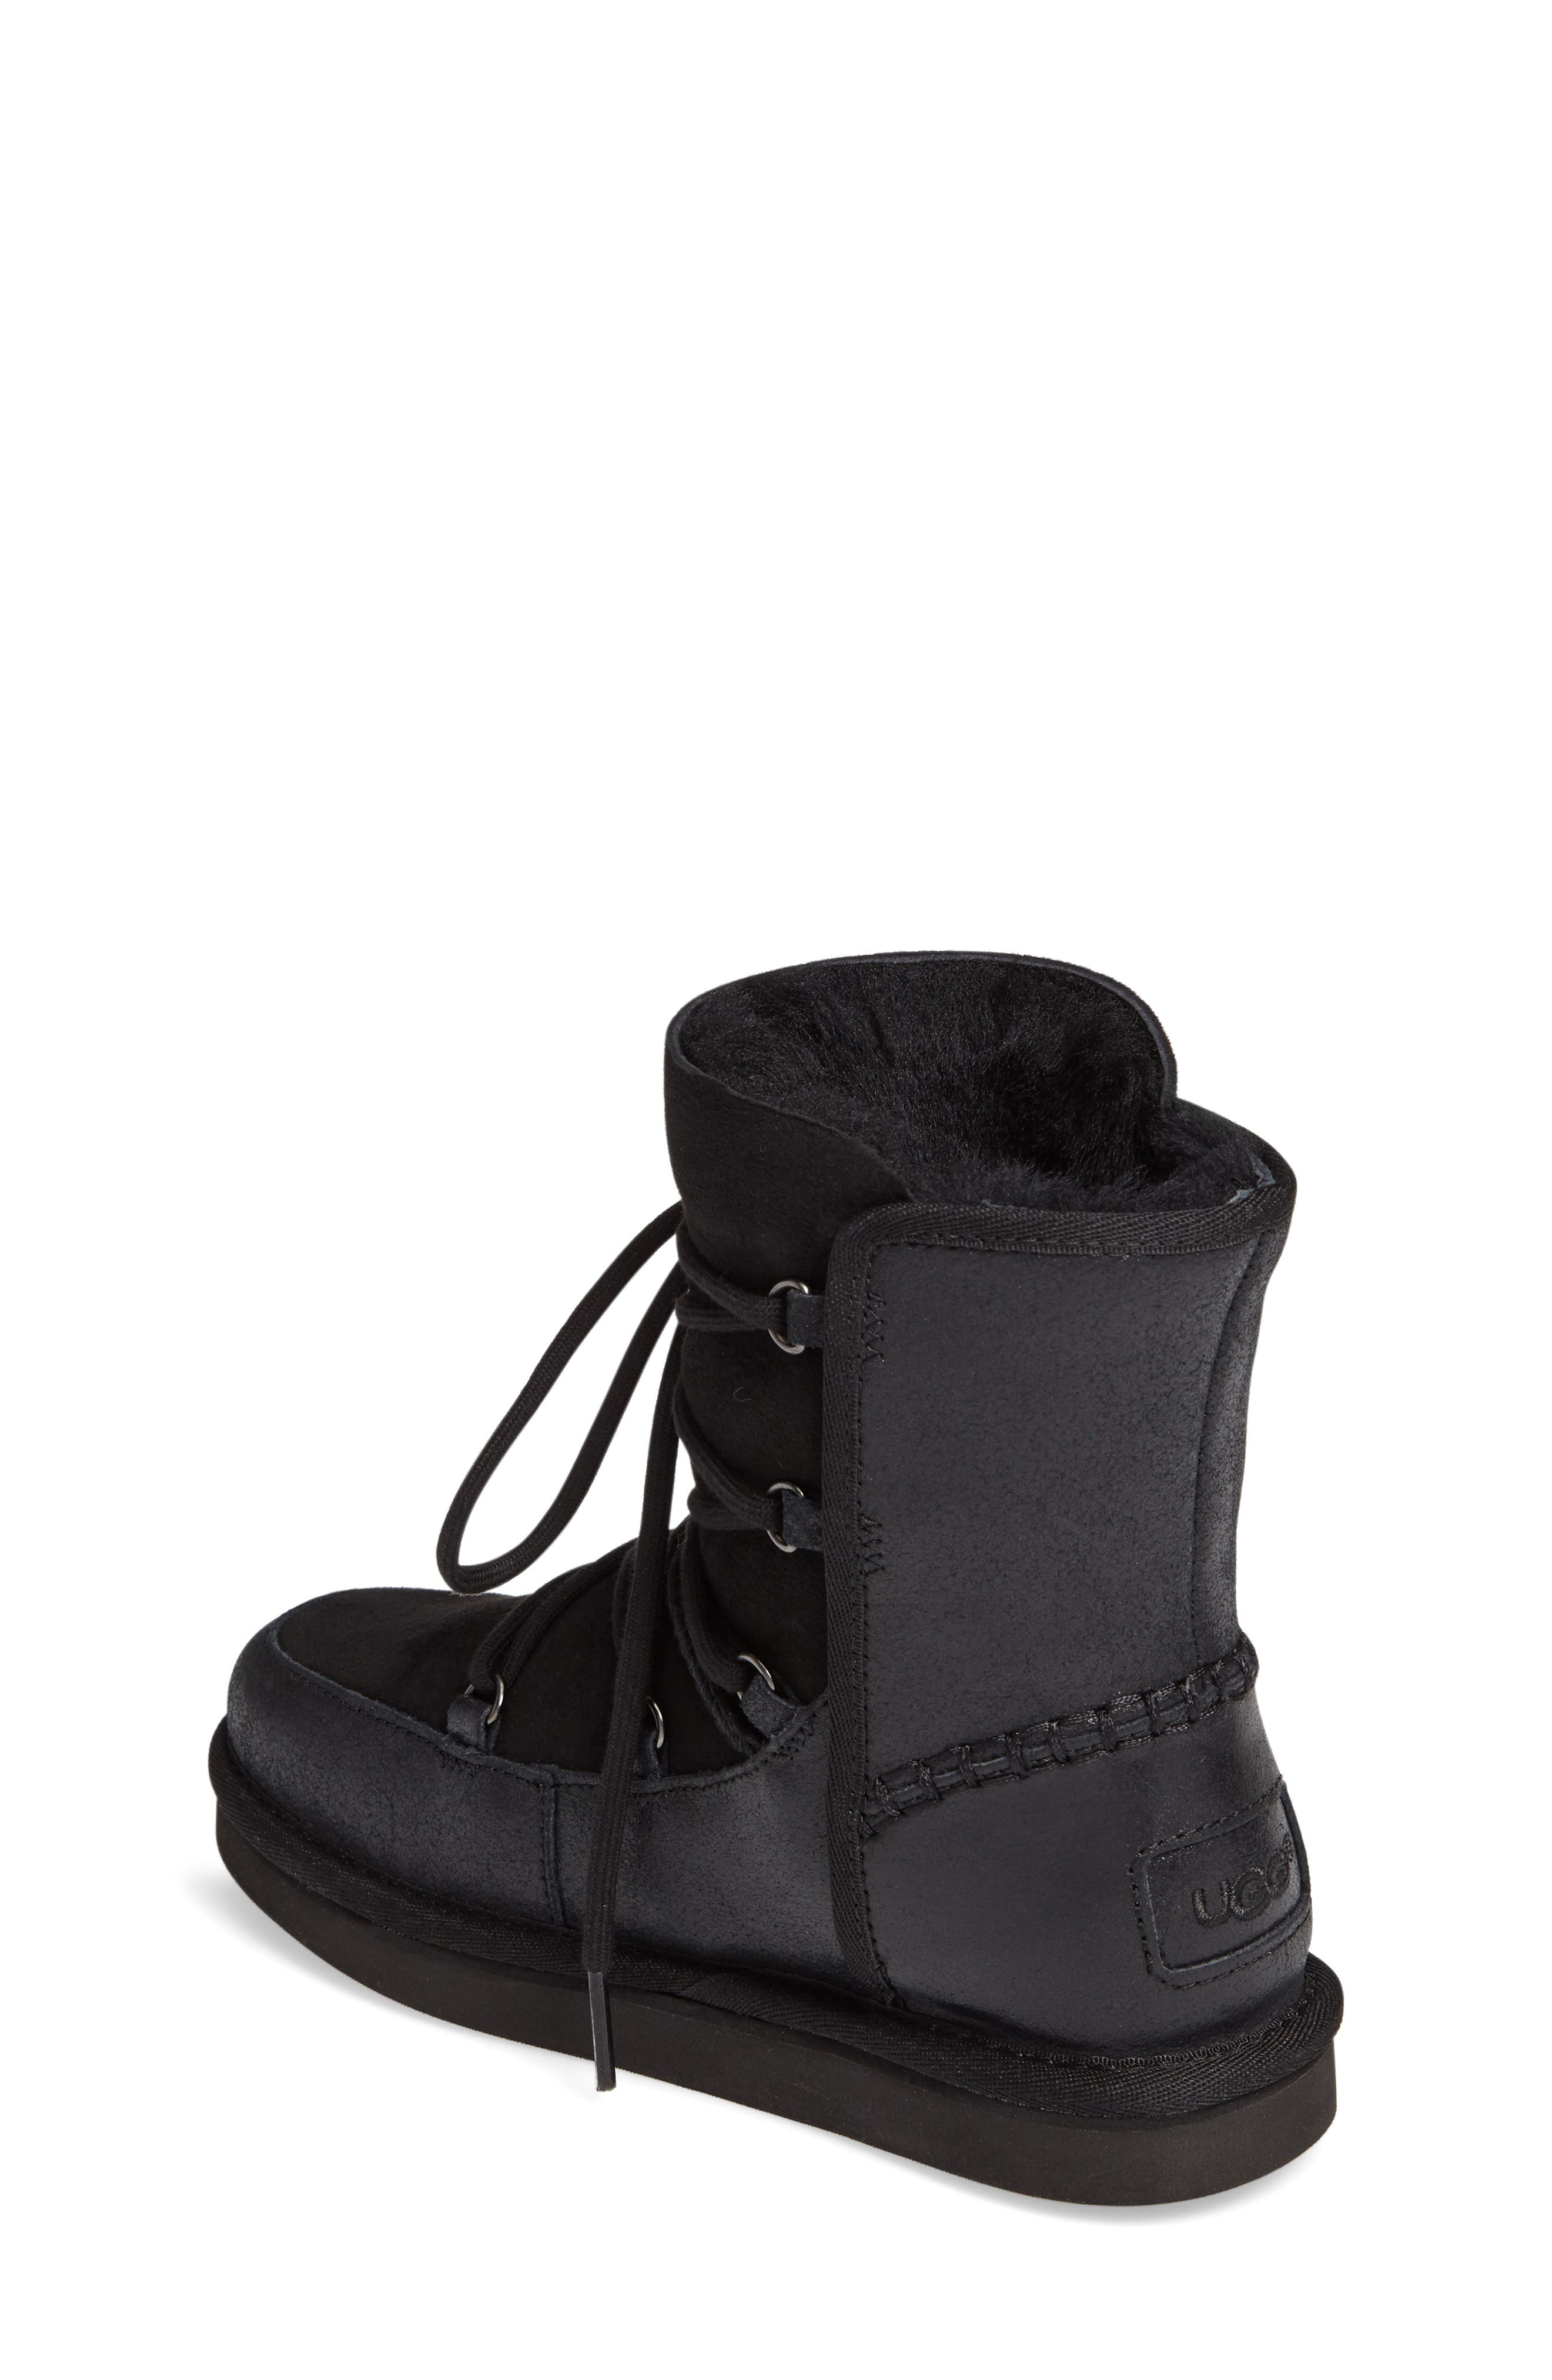 Eliss Water Resistant Suede Boot,                             Alternate thumbnail 2, color,                             001